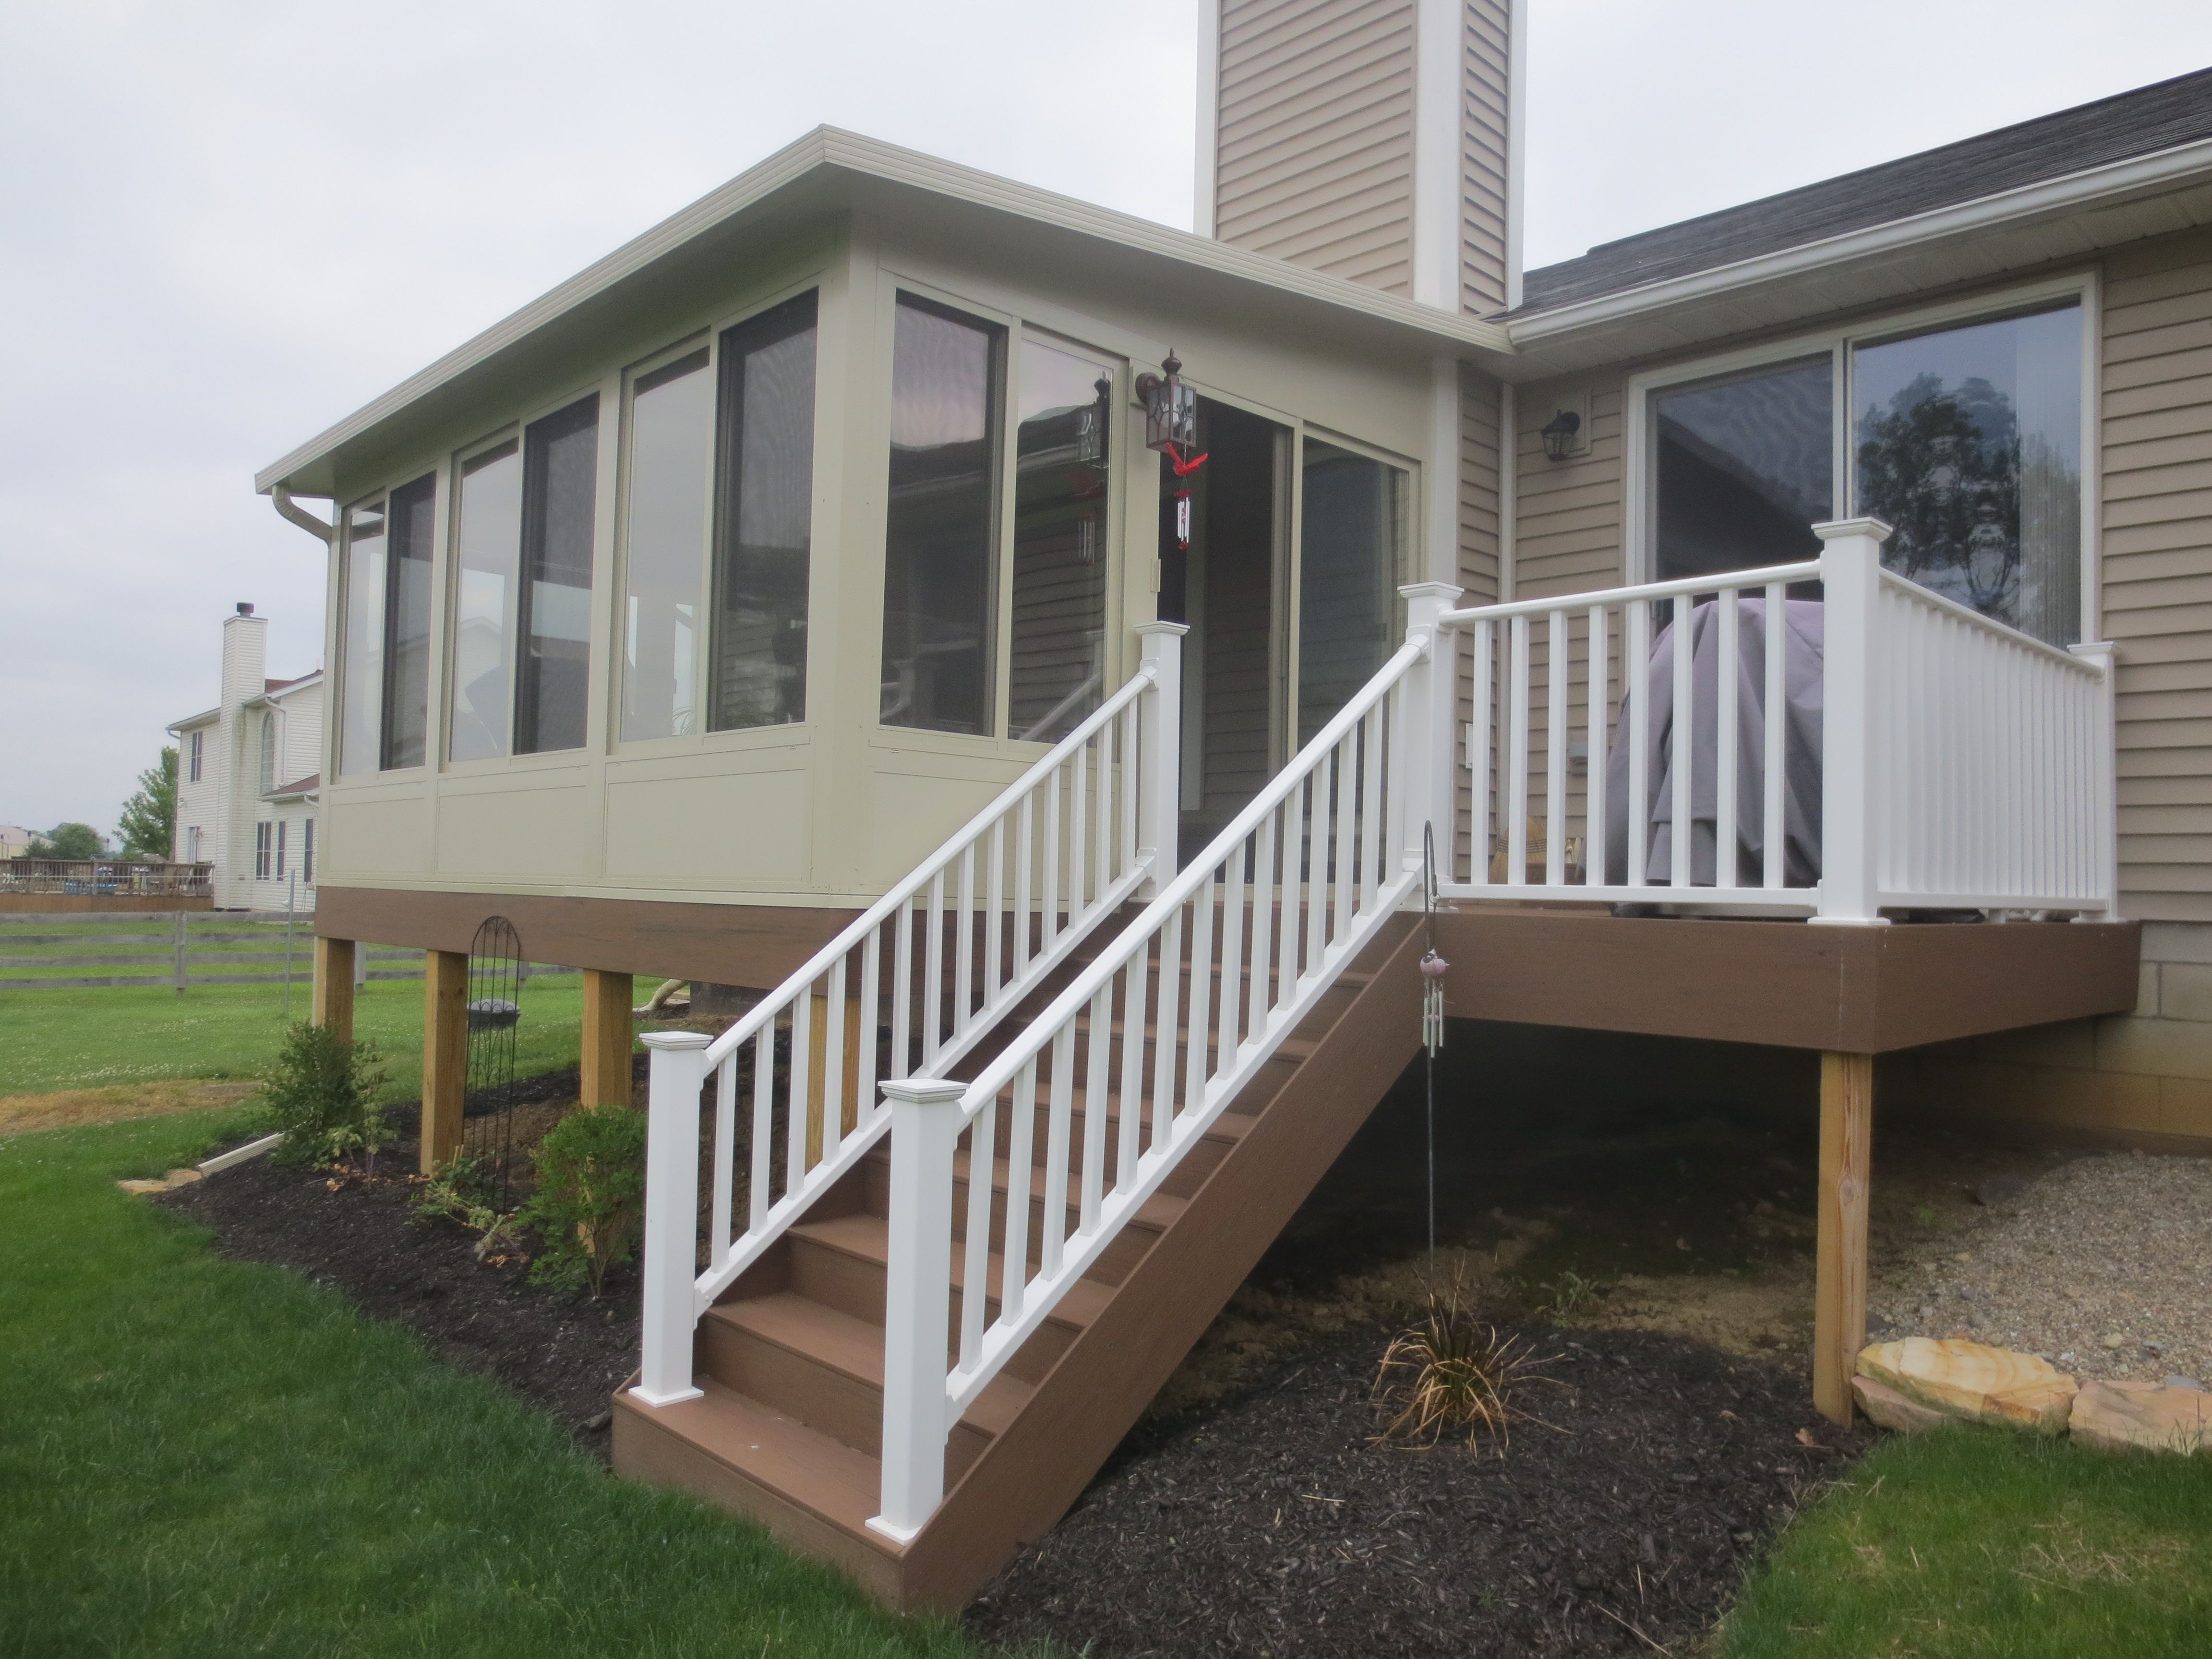 Jsb home solutions can build the deck and the betterliving for Building a sunroom on a deck